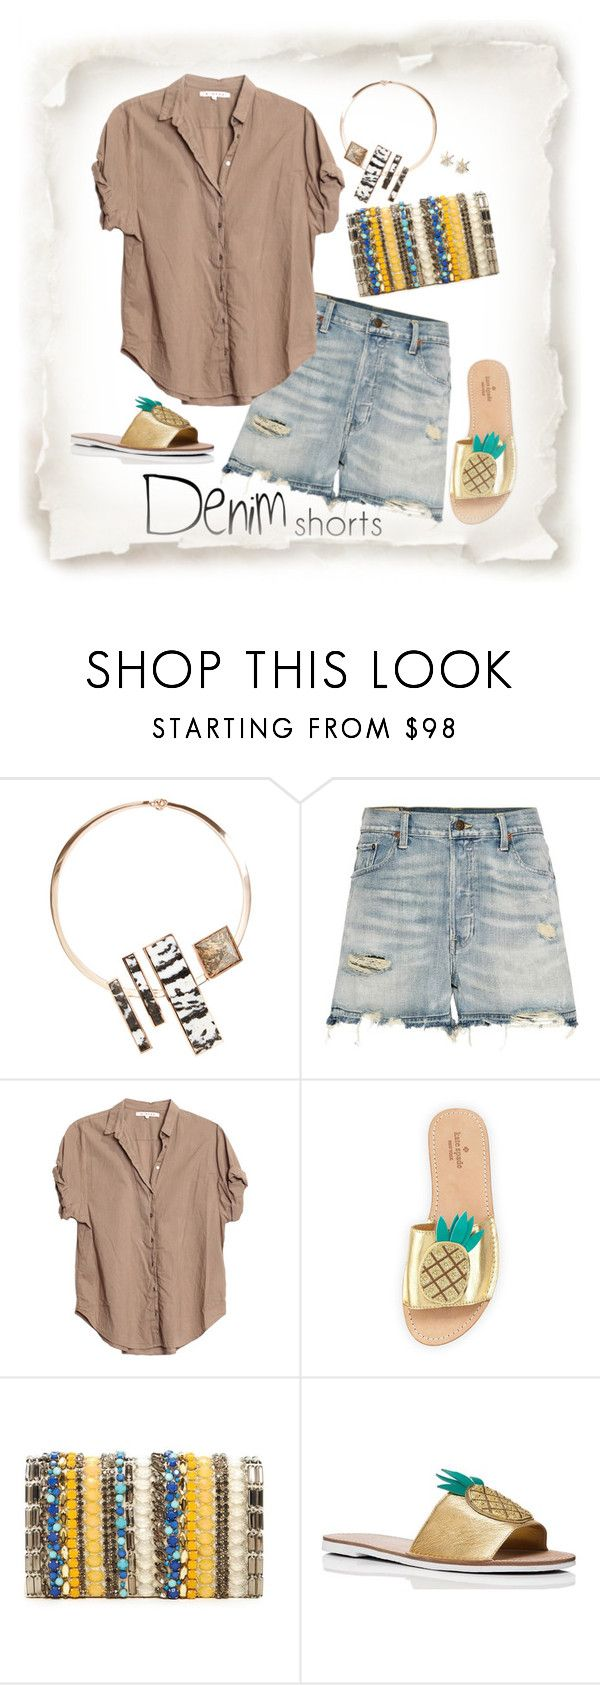 """The final cut: Denim Shorts"" by musicfriend1 ❤ liked on Polyvore featuring Eddie Borgo, Polo Ralph Lauren, Xirena, Kate Spade, Alice + Olivia, Sole Society, jeanshorts, denimshorts and cutoffs"